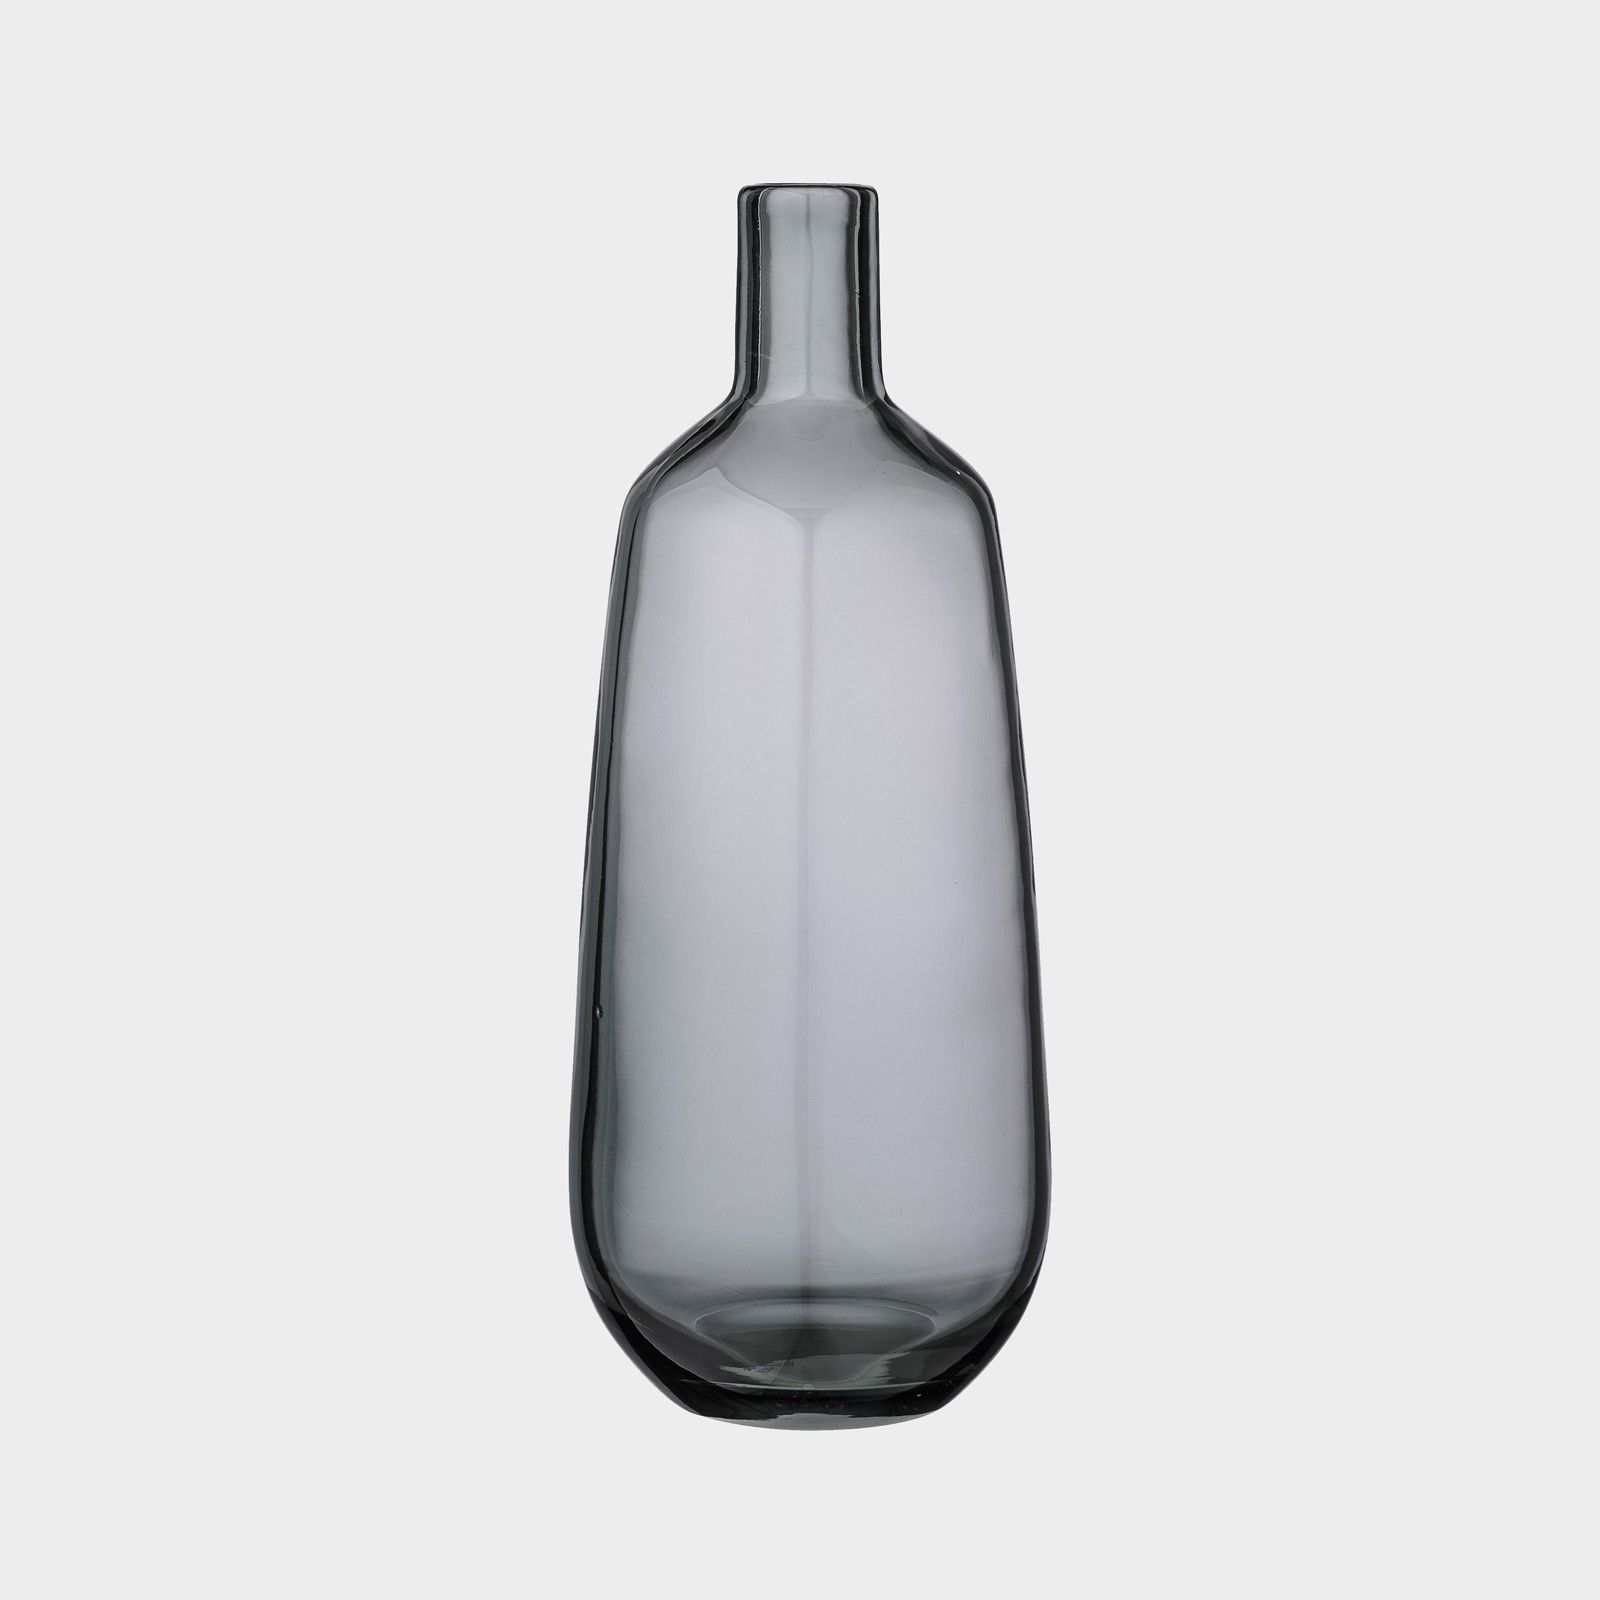 Bloomingville Grey Glass Vase: Add striking Scandinavian style to your abode with this Grey Glass Vase from Bloomingville. Ideal for holding single flowers or a small bouquet,this narrow neck vase is a fabulous addition to any room.